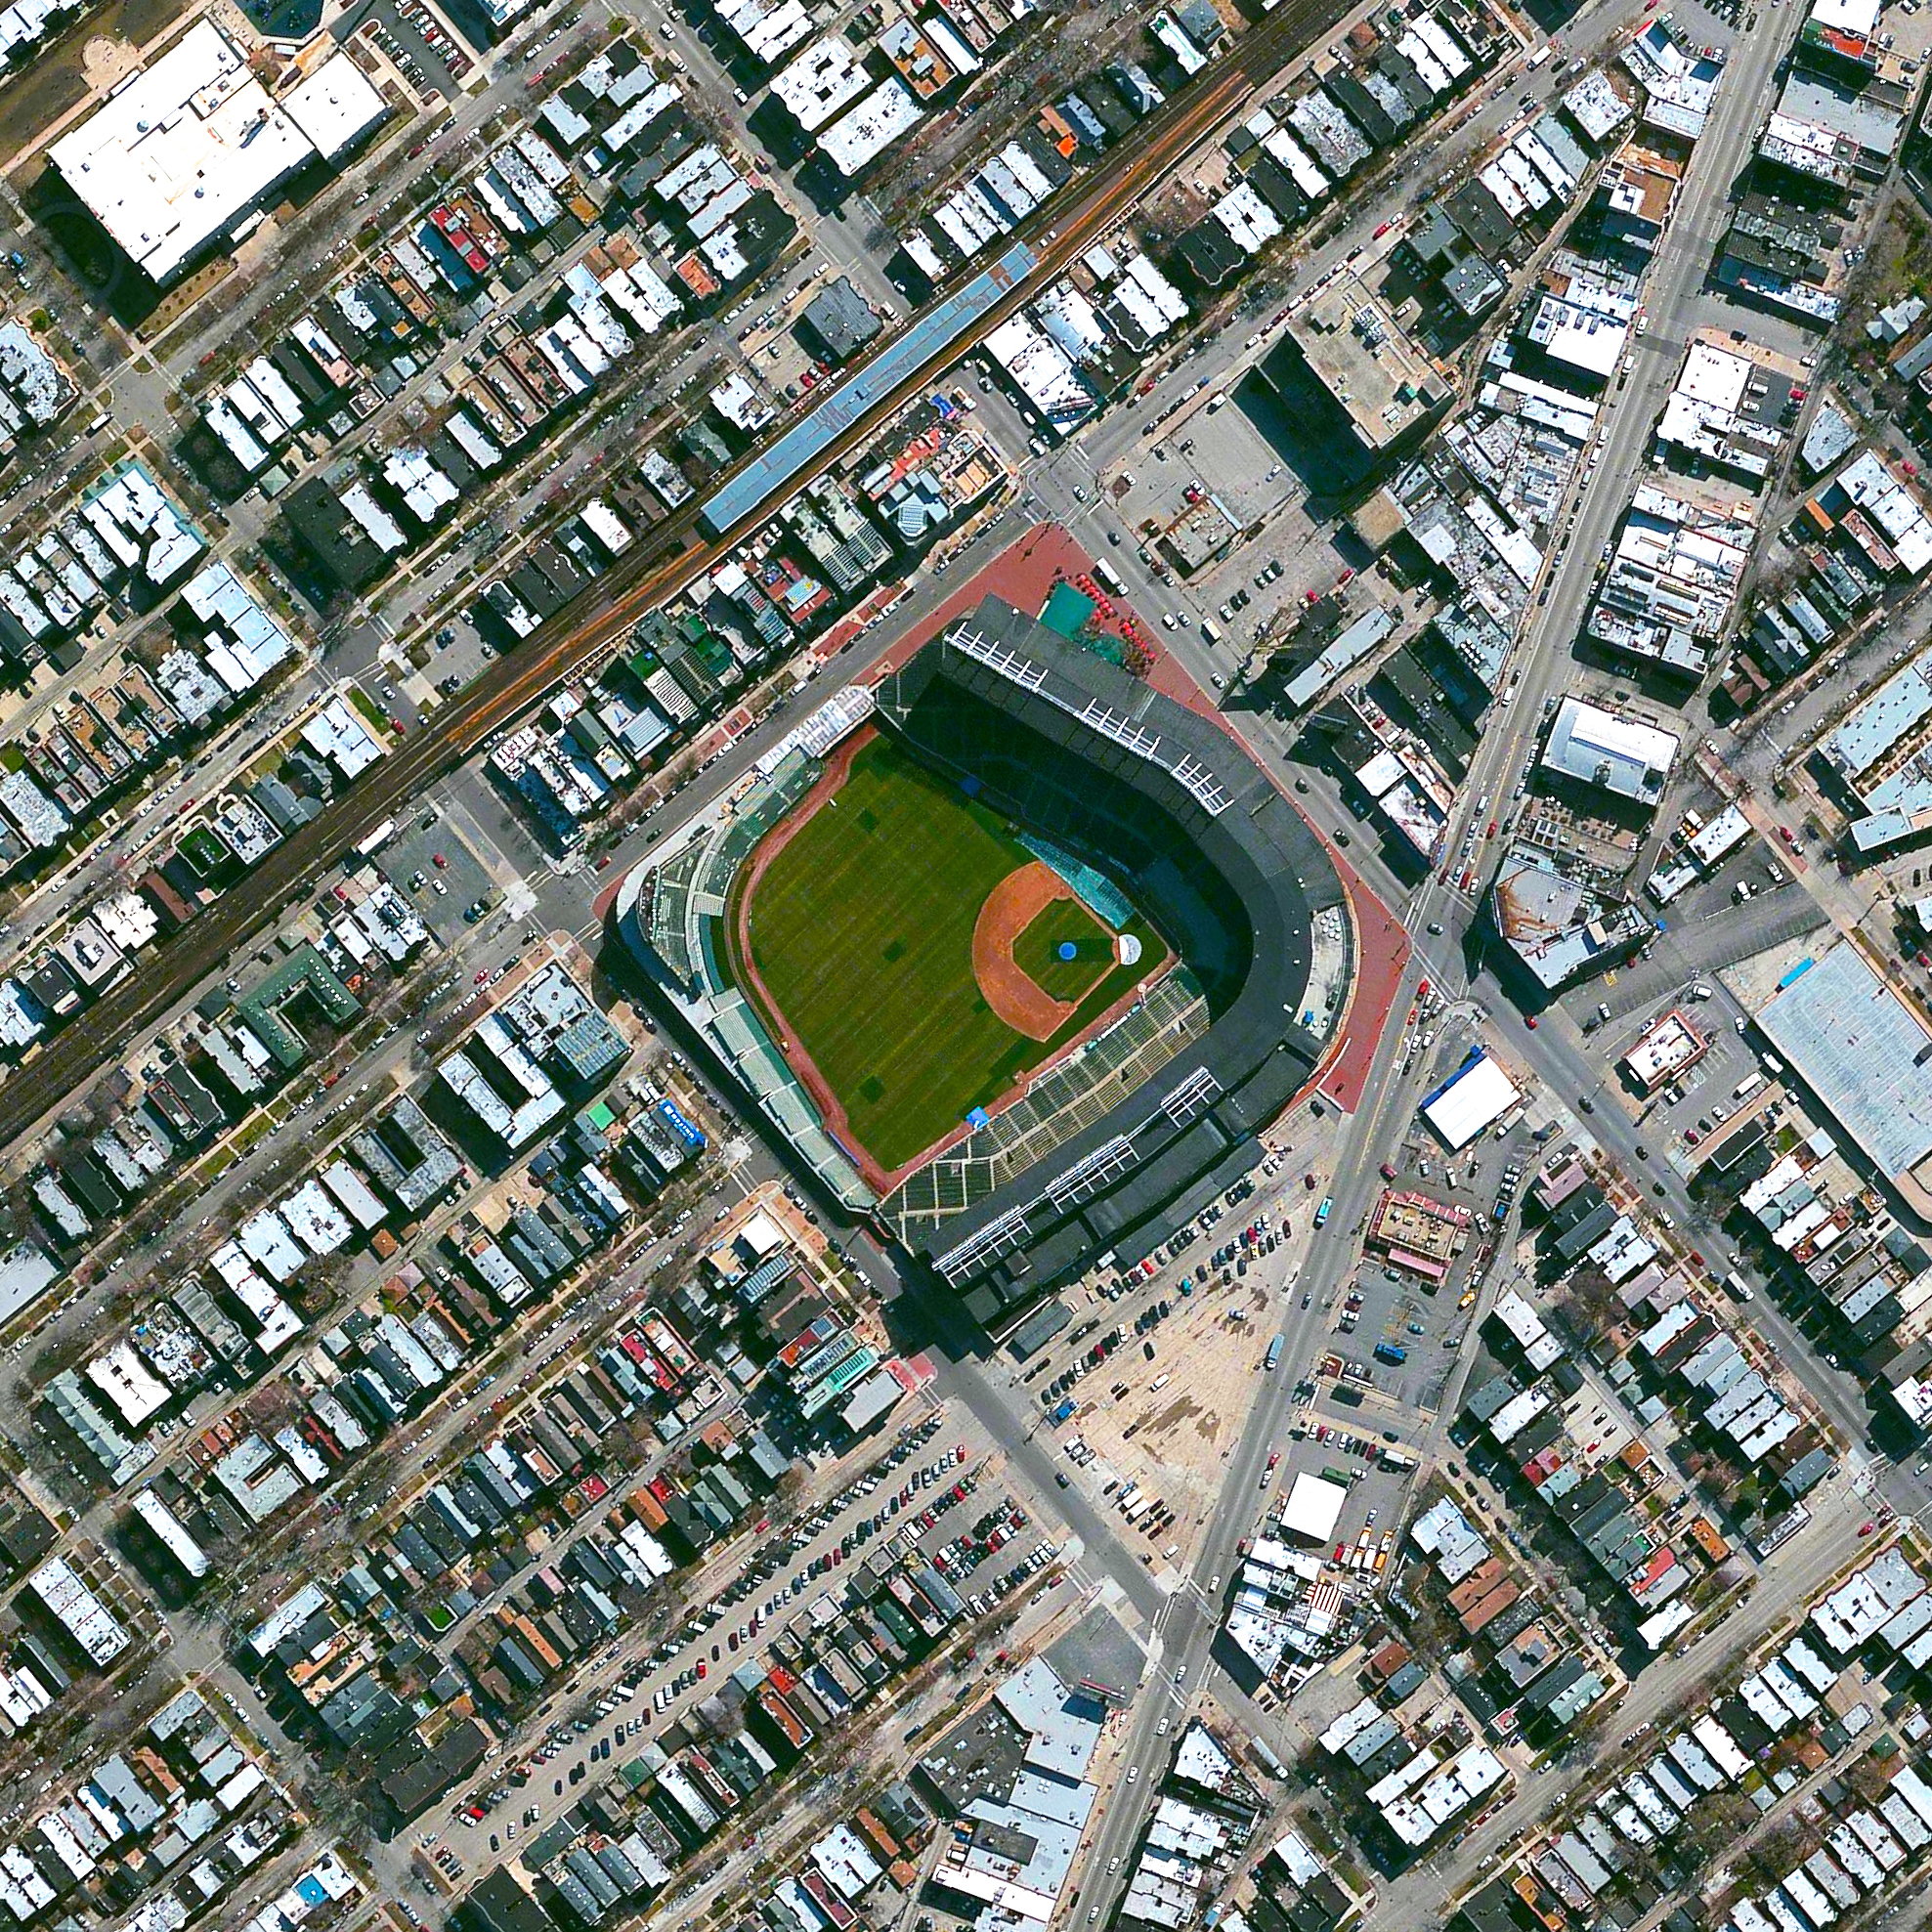 11/2/2016   Wrigley Field   Chicago, Illinois, USA   41.948°N 87.656°W     Last night the Chicago Cubs won the World Series, ending a 108-year streak since the franchise won its last championship. Congratulations to all of the Cubs fans in Chicago and all around the world! The team's home stadium, Wrigley Field, is captured in this Overview.